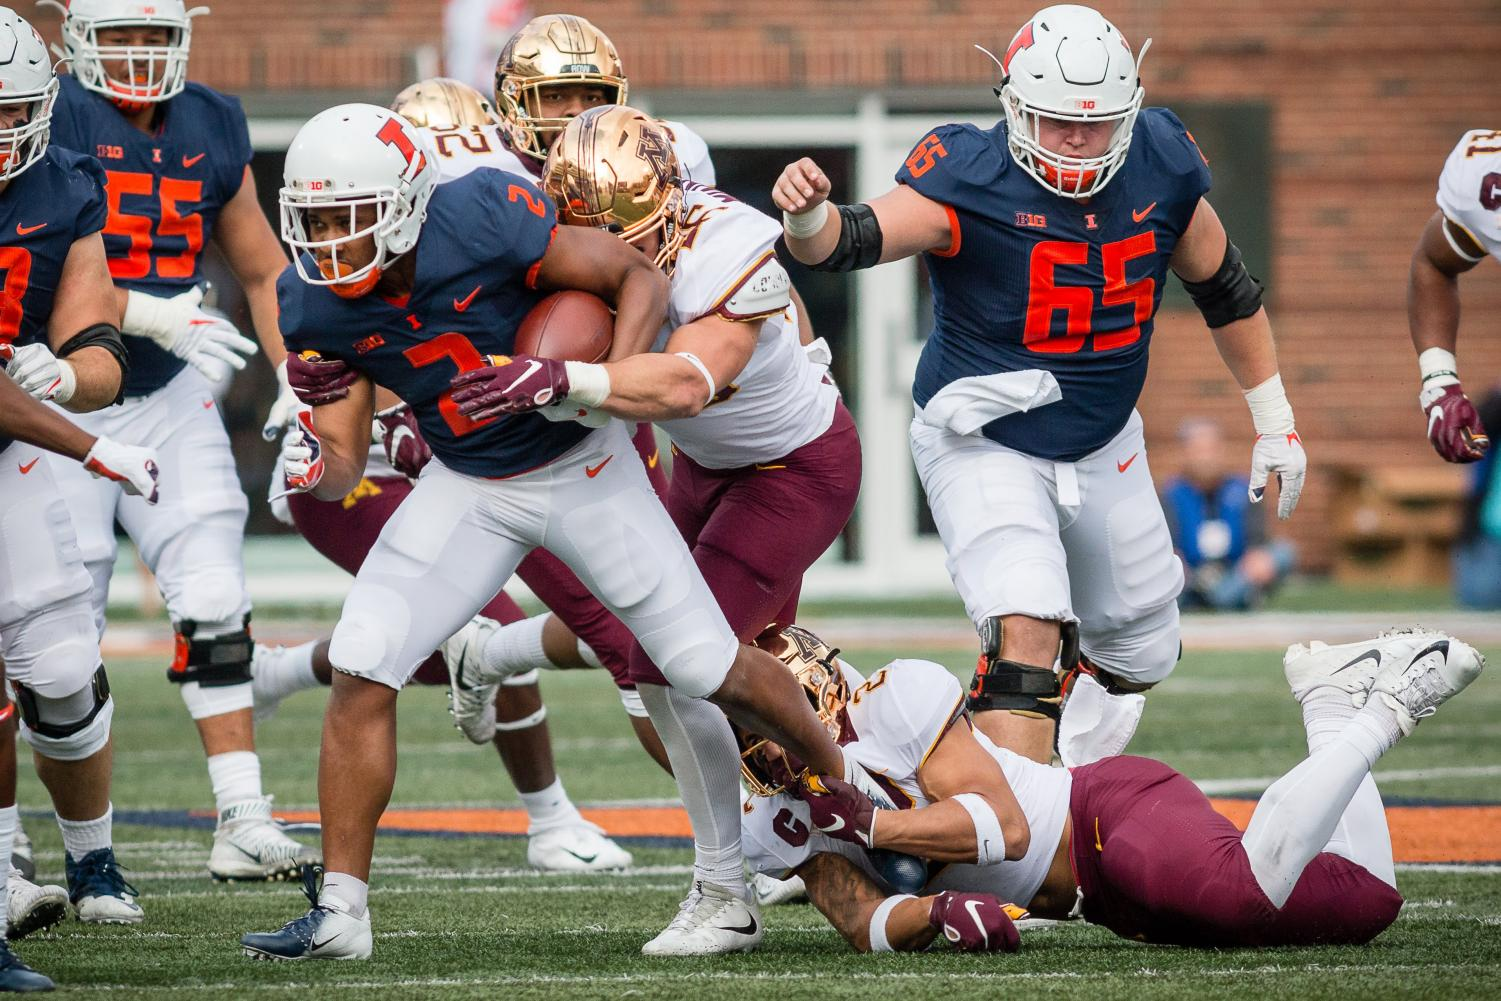 Illinois running back Reggie Corbin tries to break a tackle during the game against Minnesota at Memorial Stadium on Nov. 3. The Illini won 55-31.